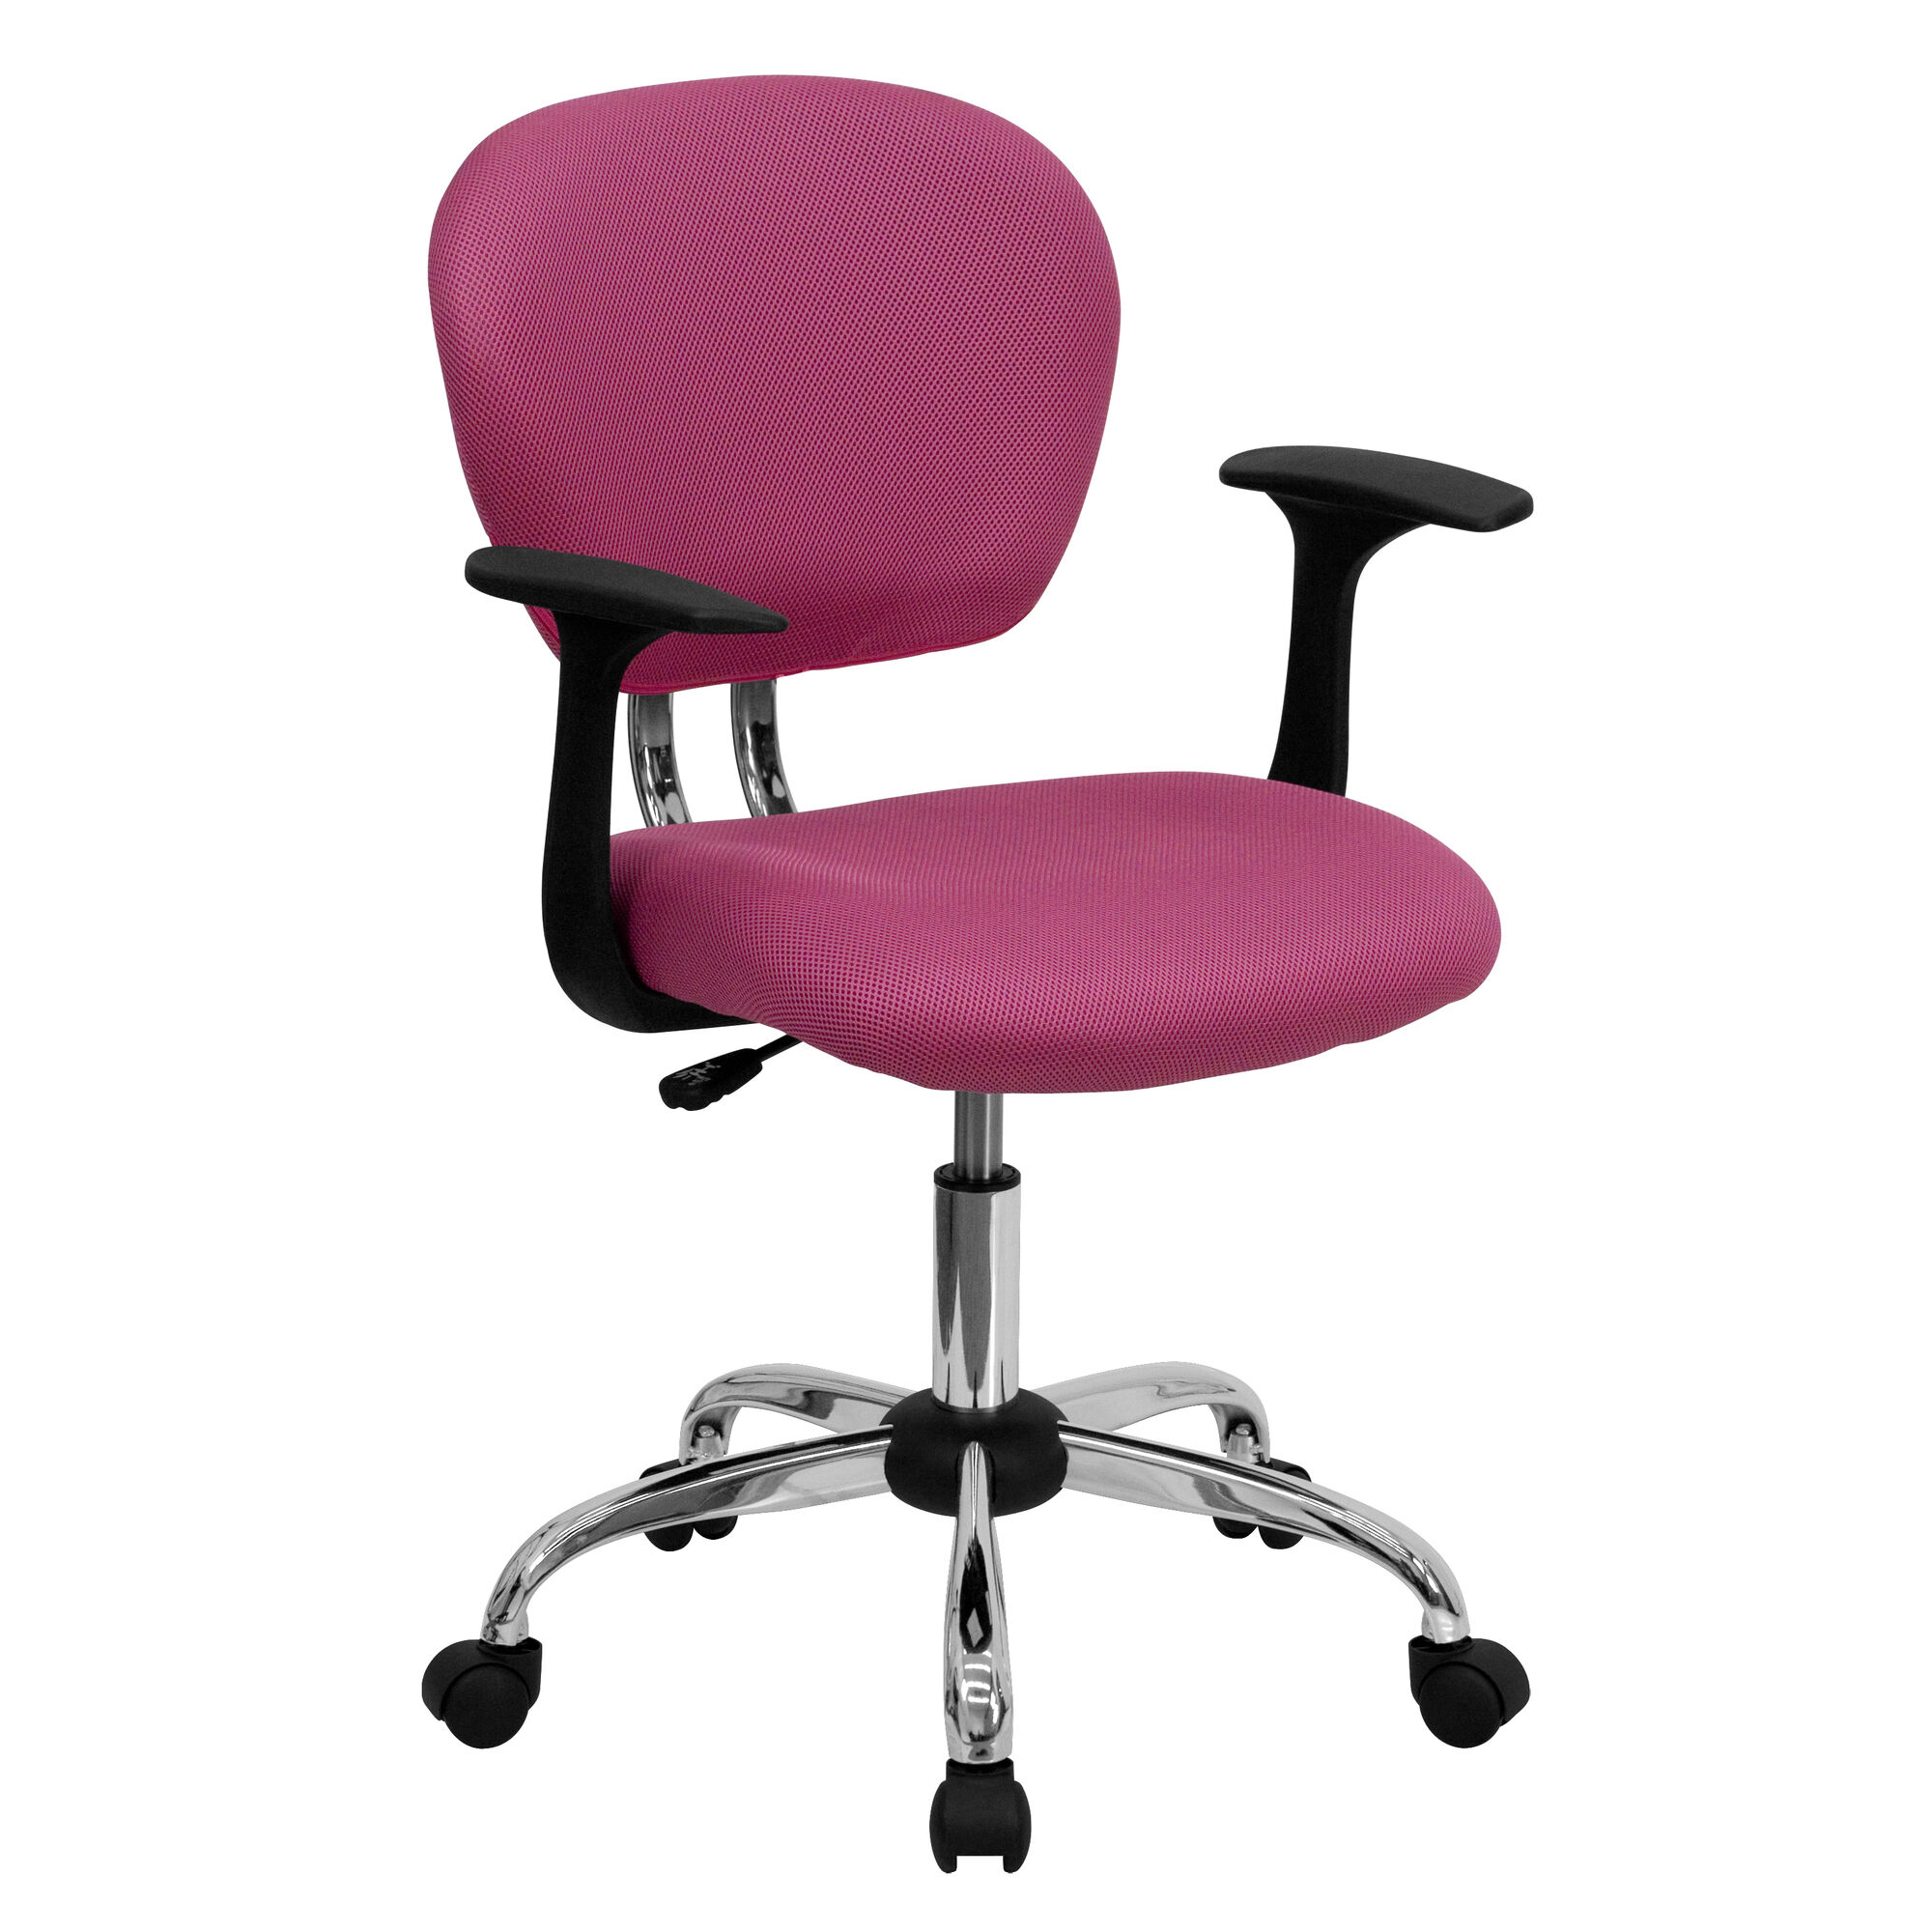 Flash furniture h 2376 f pink arms gg for H furniture ww chair